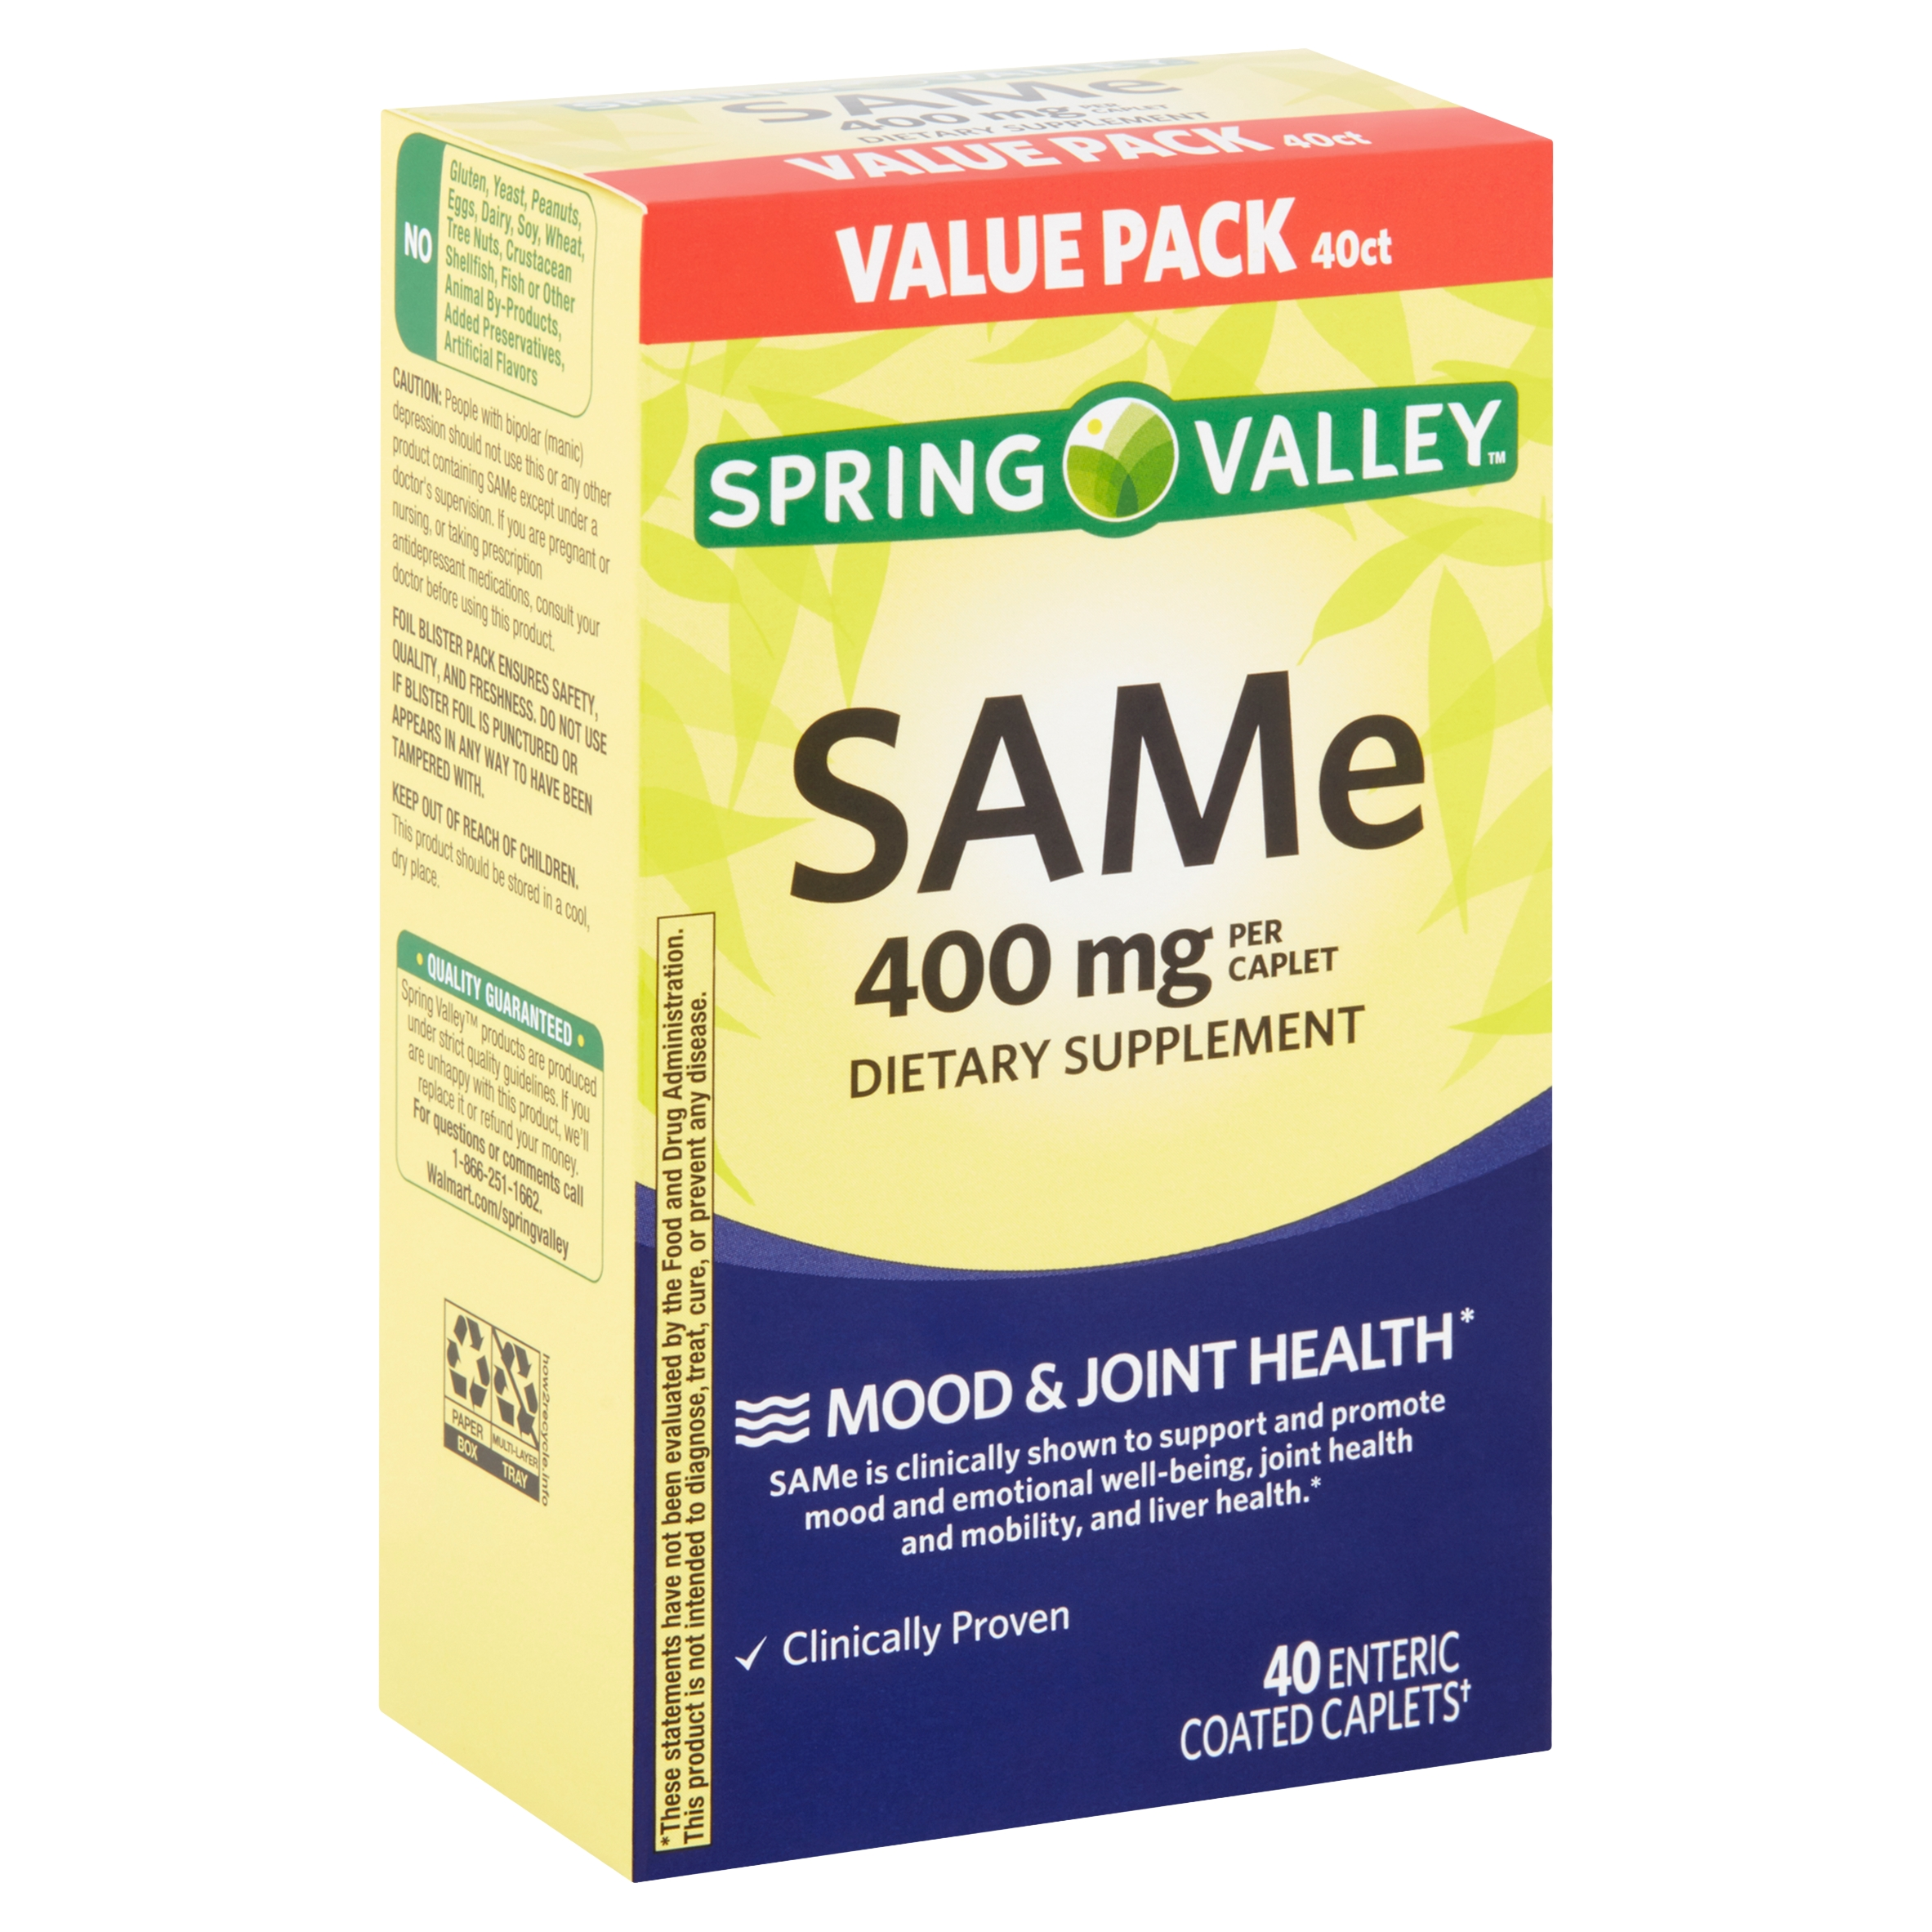 Spring Valley SAMe Enteric Coated Caplets Value Pack, 400 mg, 40 count